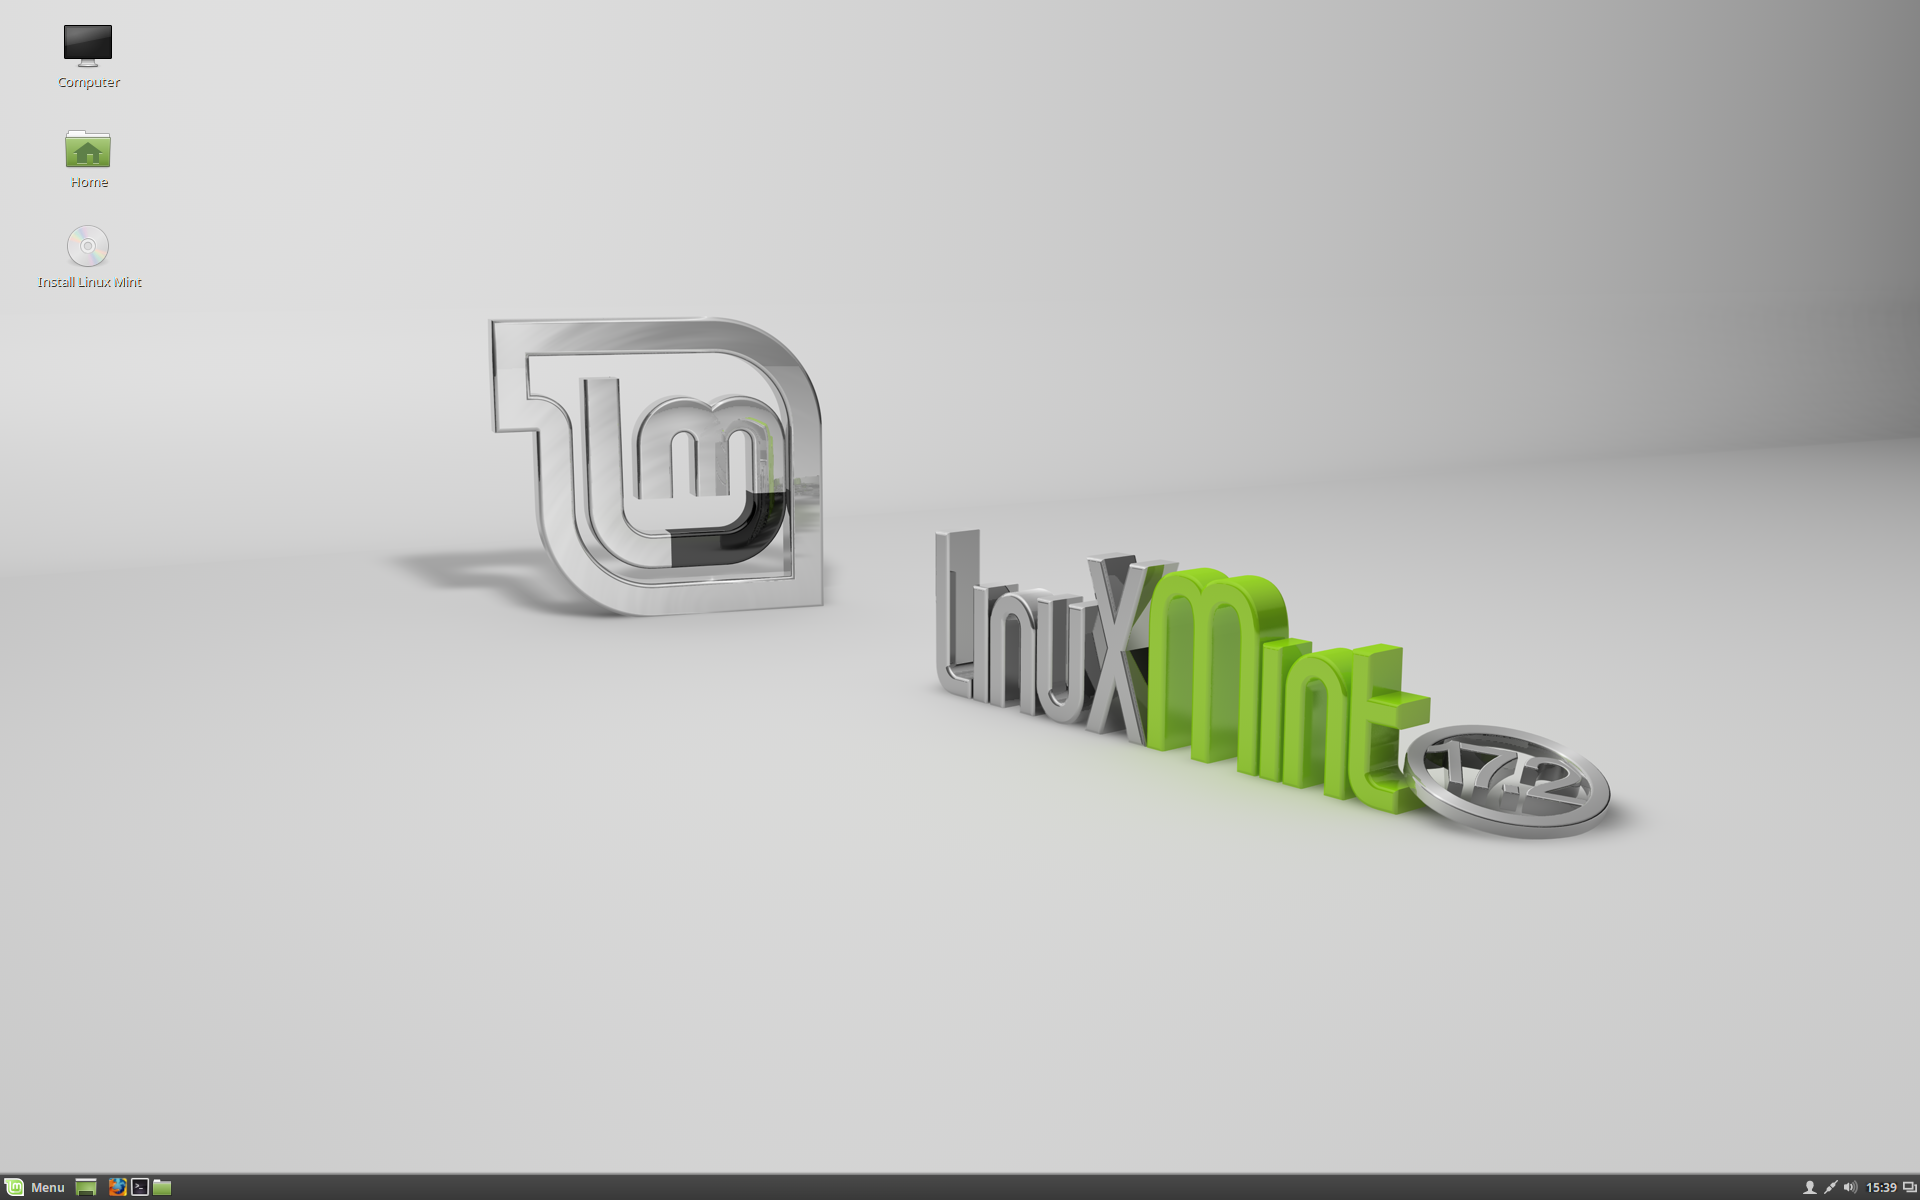 New features in Linux Mint 17 2 Cinnamon - Linux Mint